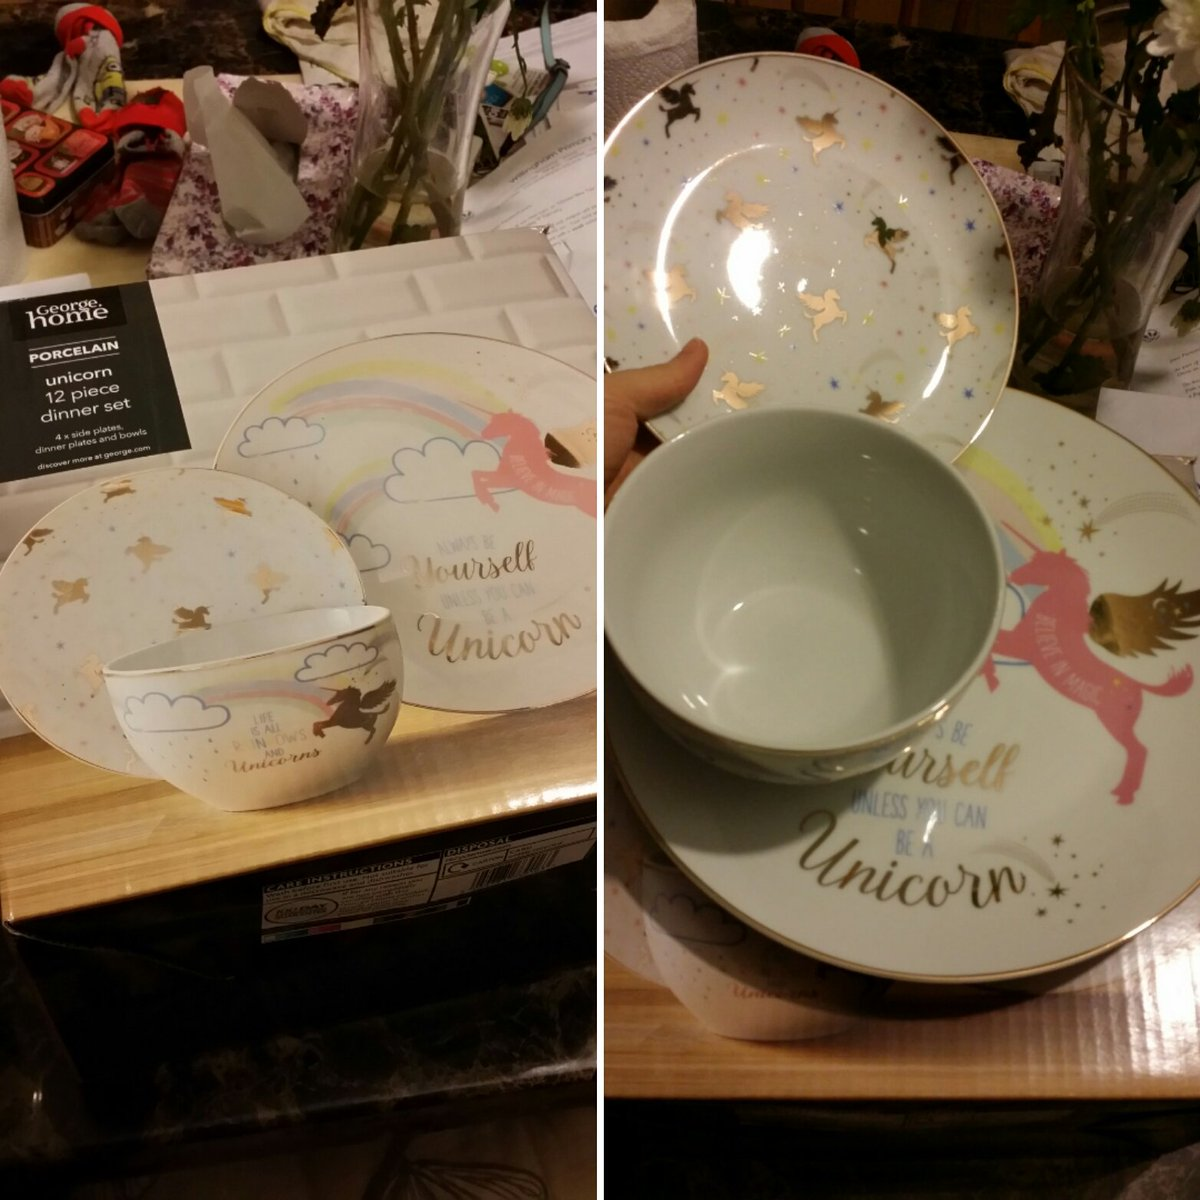 Also this unicorn porcelain dinner set arrived Iu0027m not holding back Yu0027all donu0027t need to live vicariously through me this set is from the ASDA Just buy ... & Sonia Leong on Twitter: